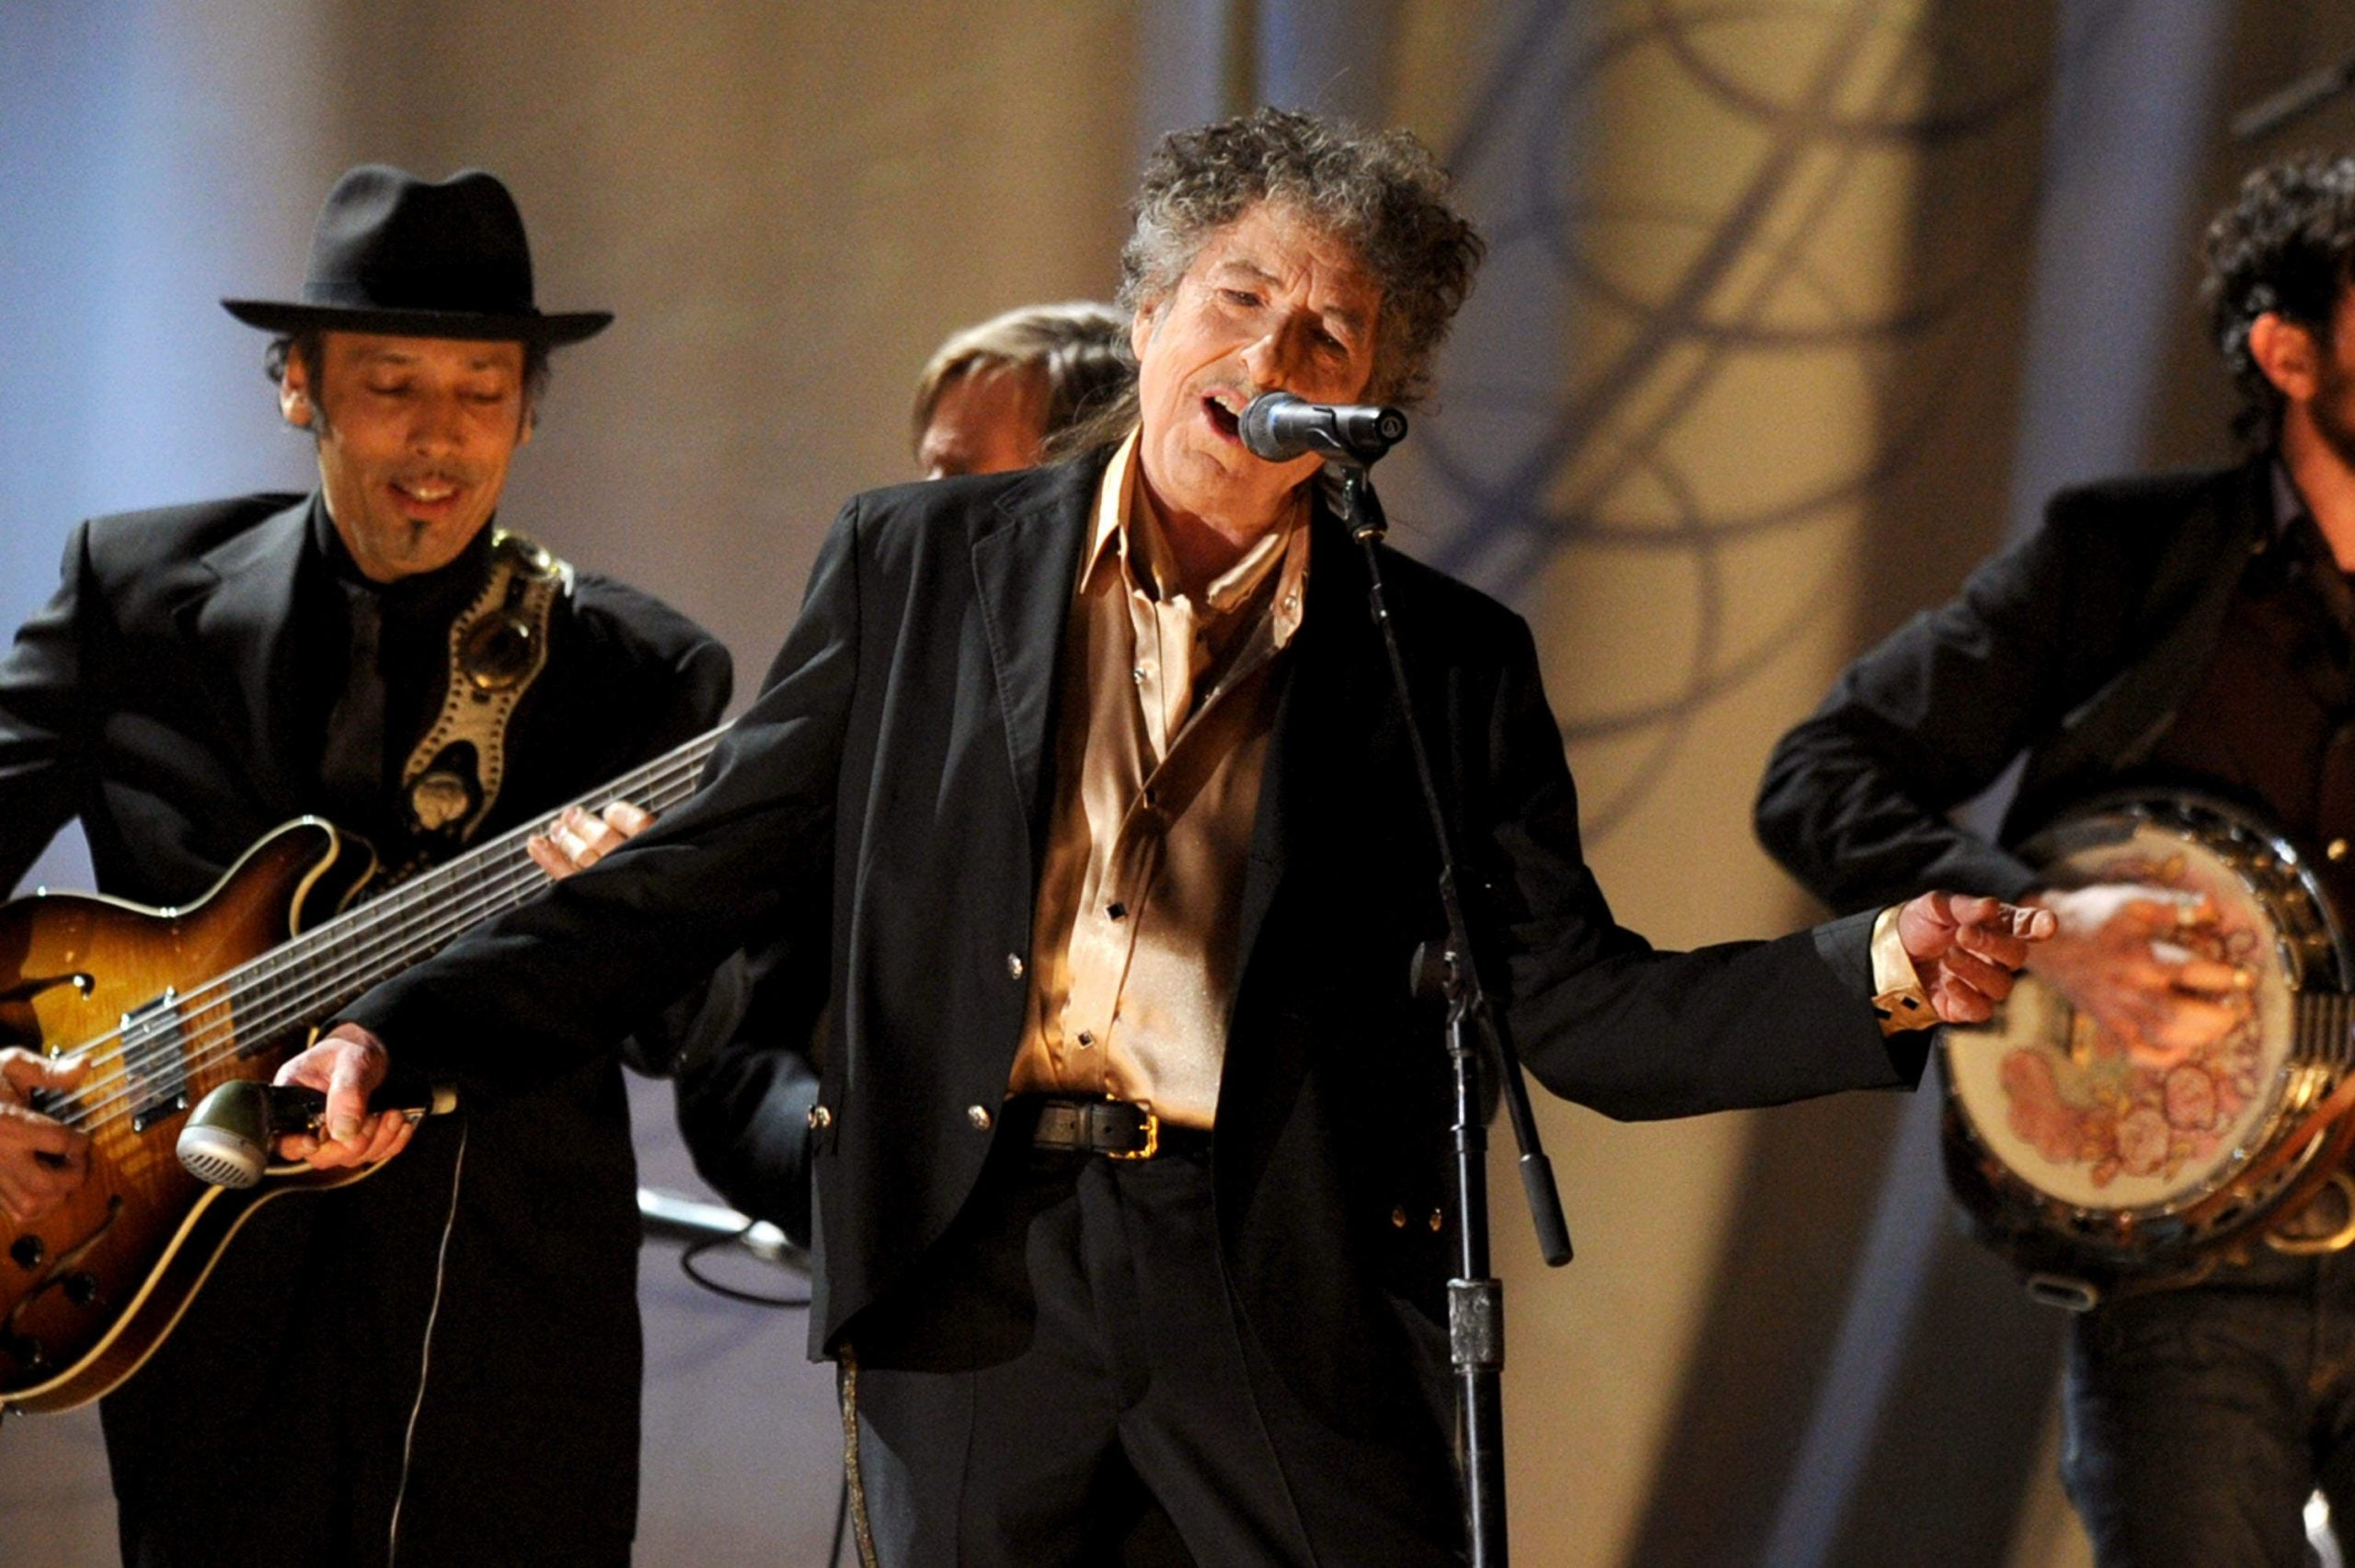 Watching Bob Dylan on stage made me yearn for the gigs of my youth